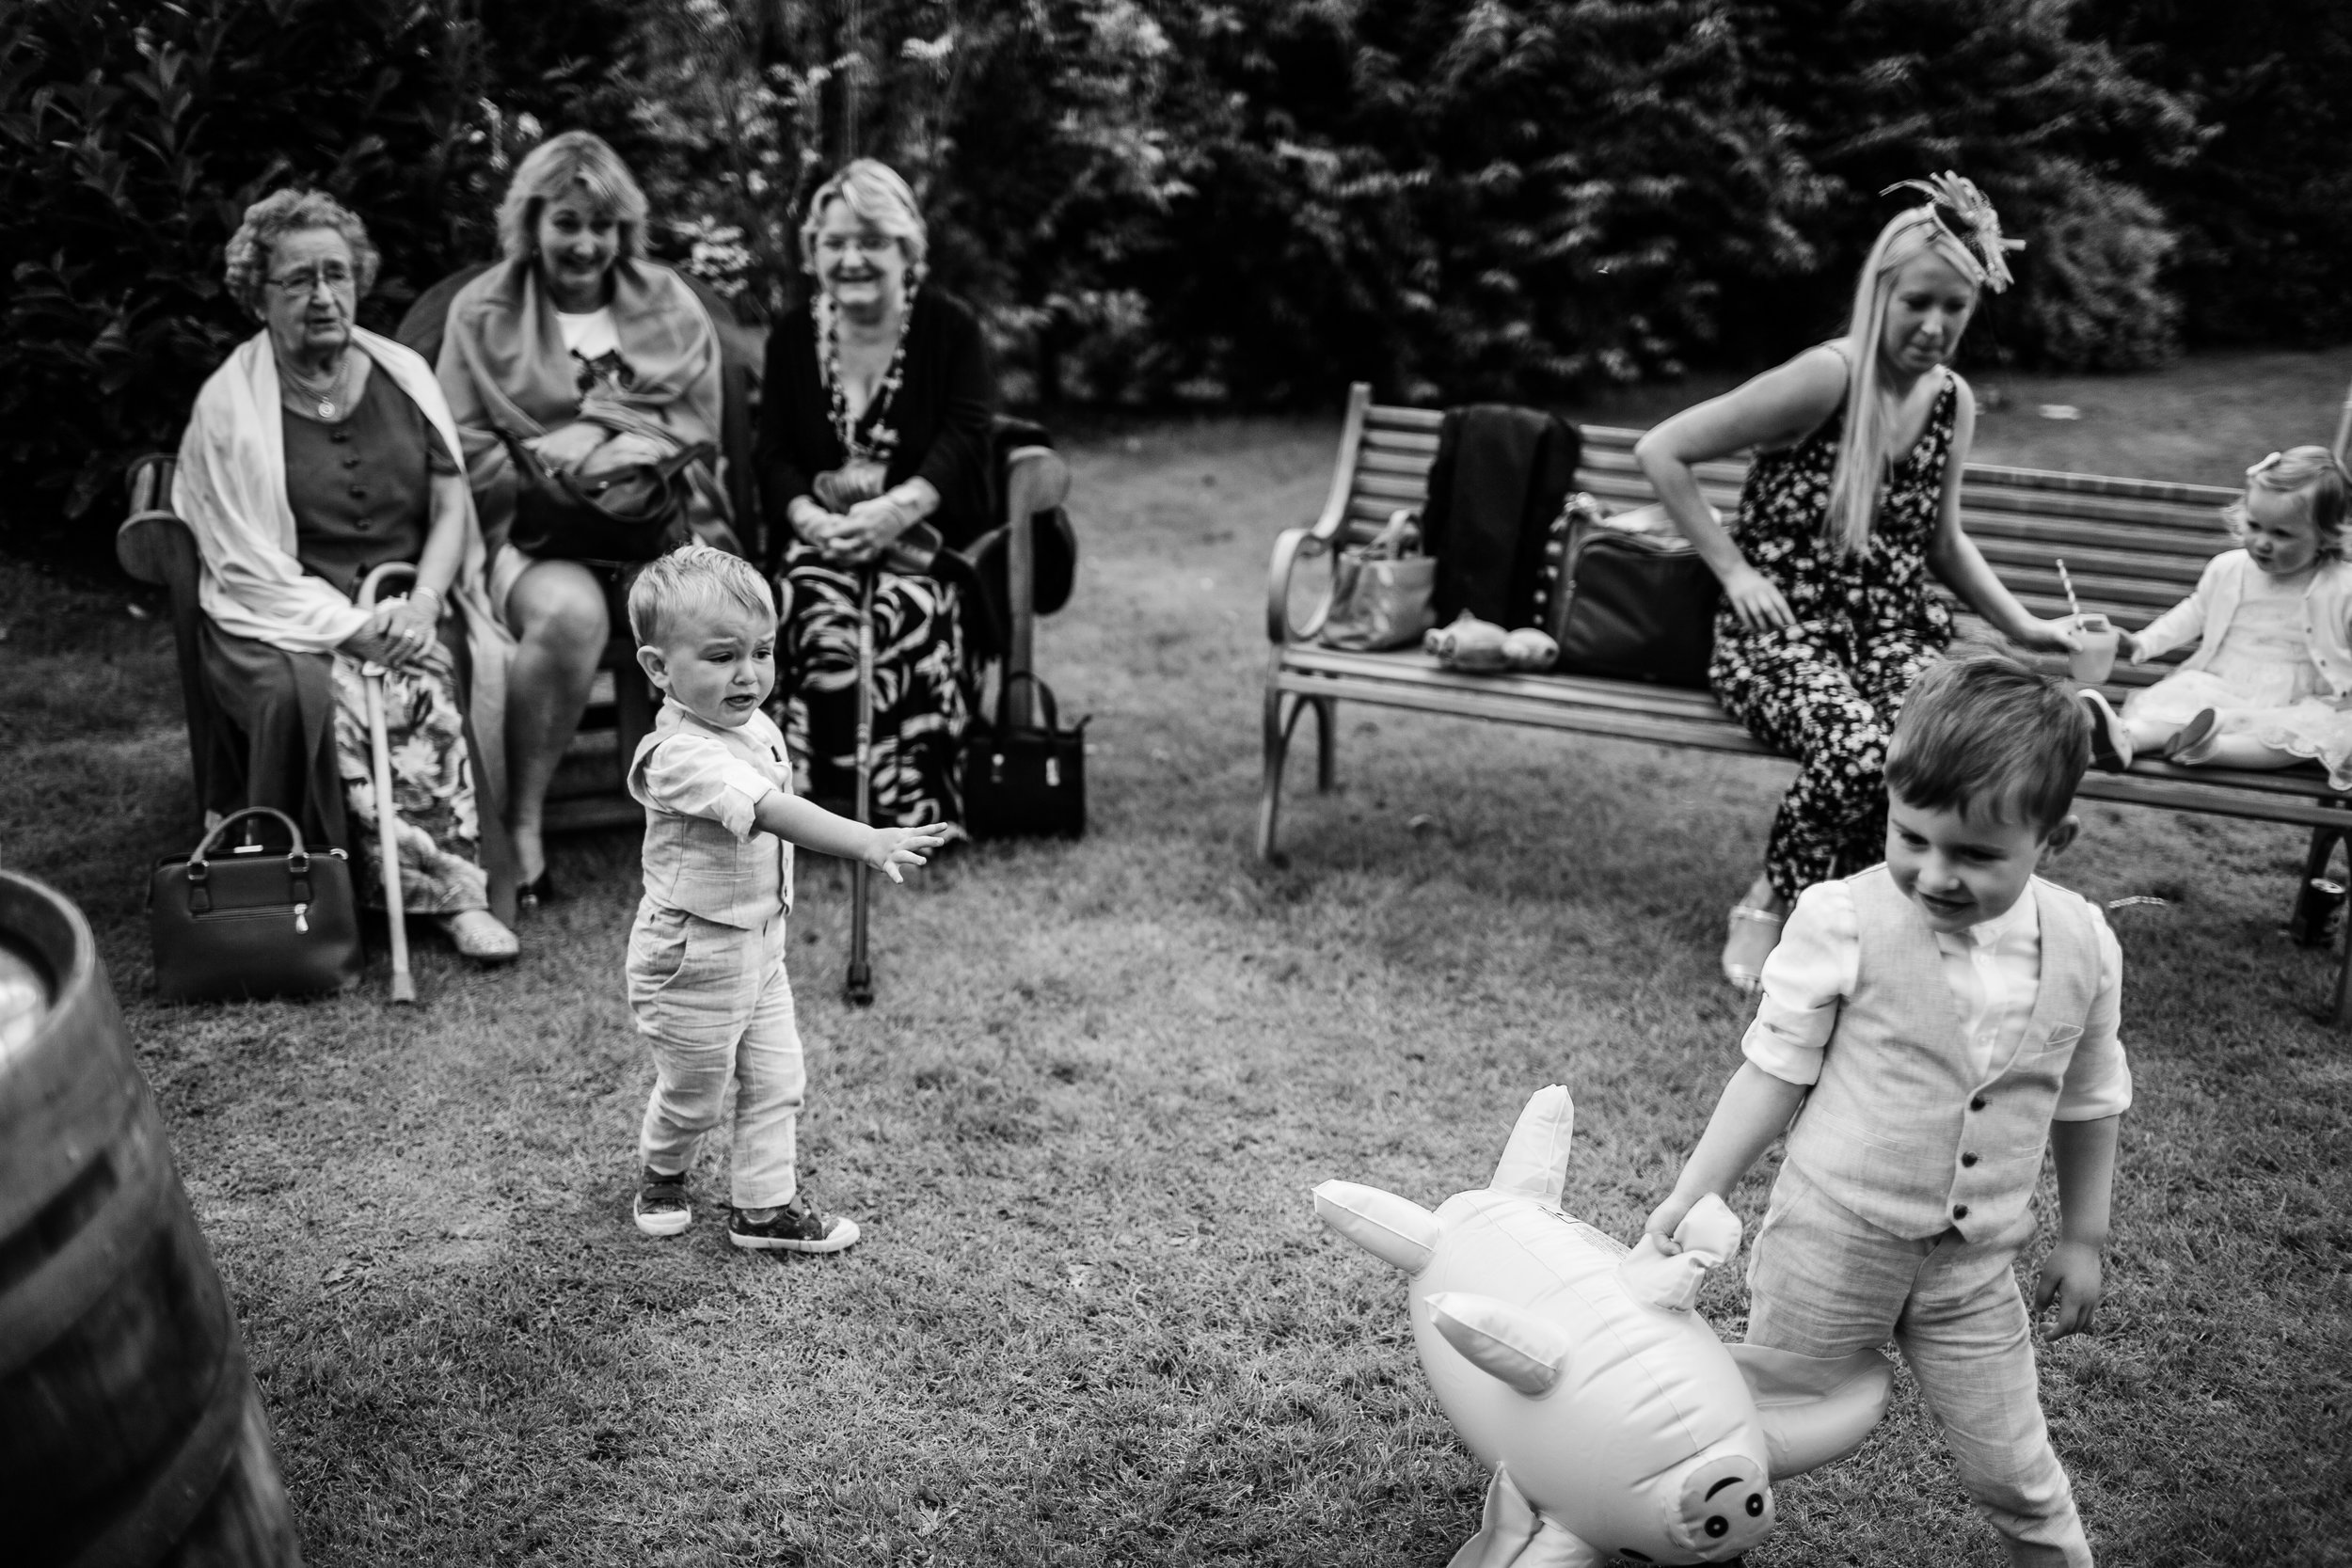 children play with inflatable pigs at a wedding